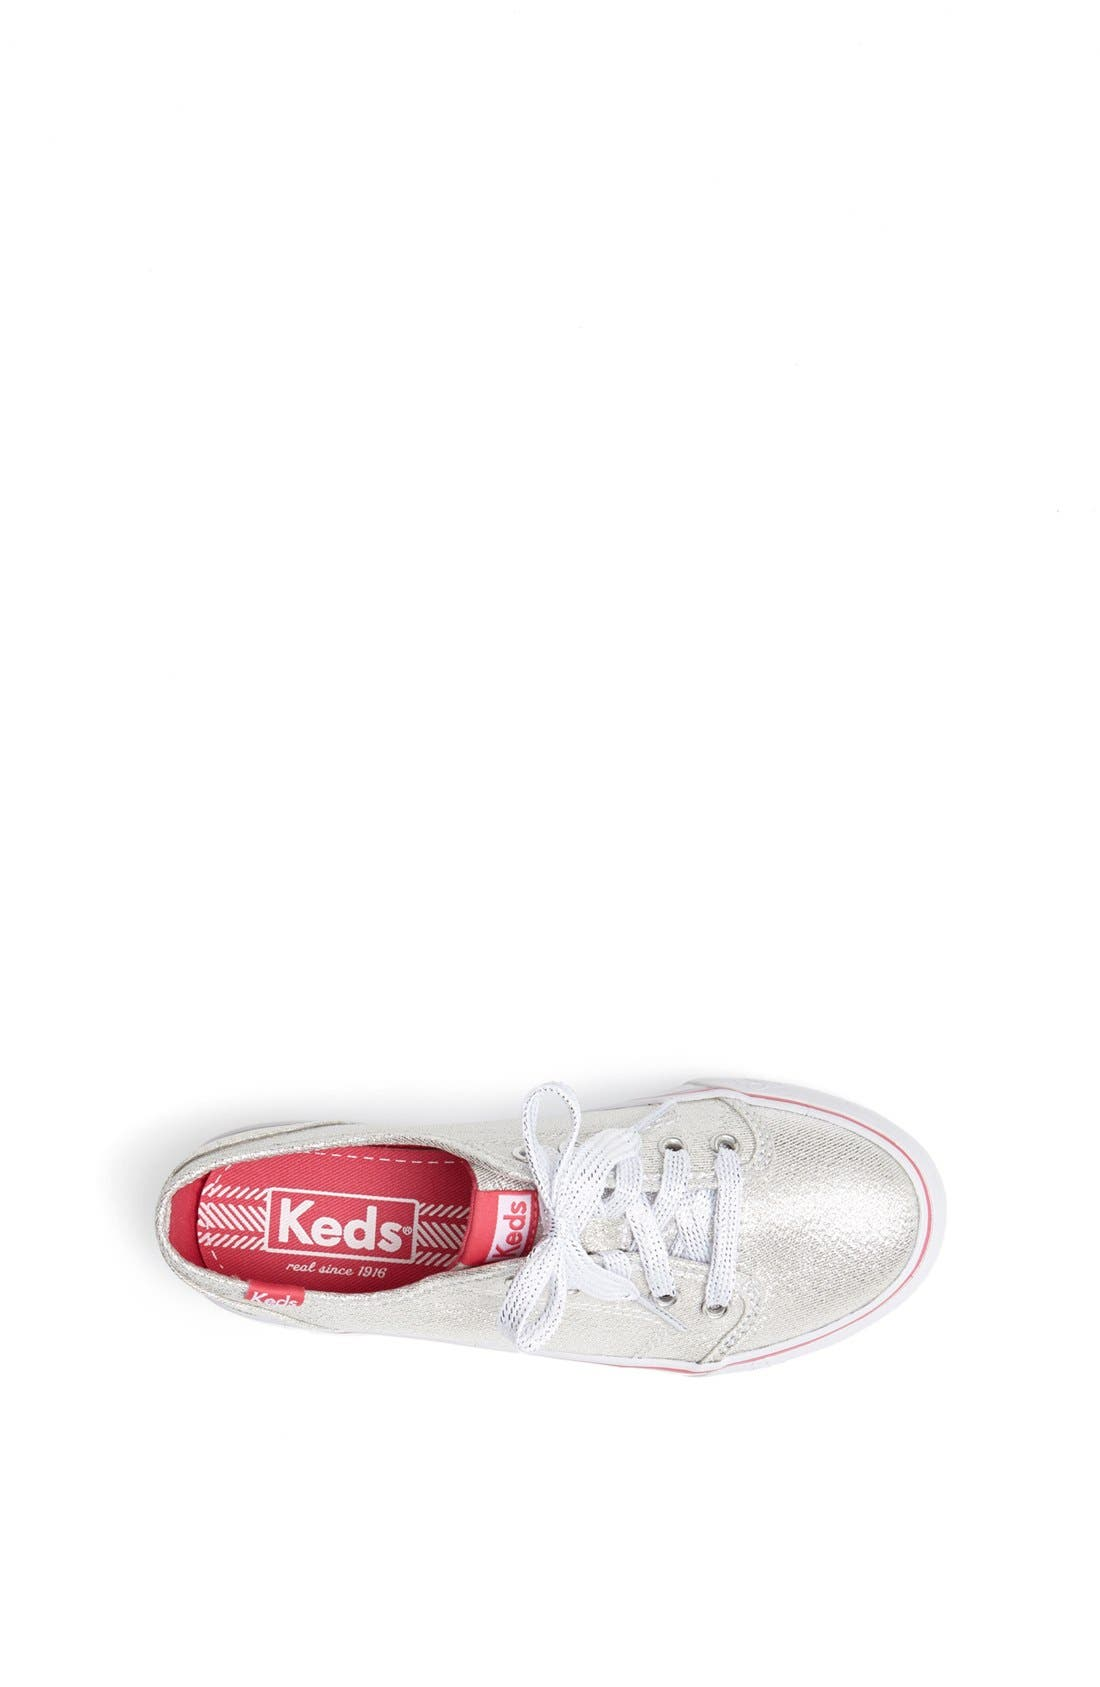 Alternate Image 3  - Keds® 'Double Dutch Shimmer' Sneaker (Toddler, Little Kid & Big Kid)